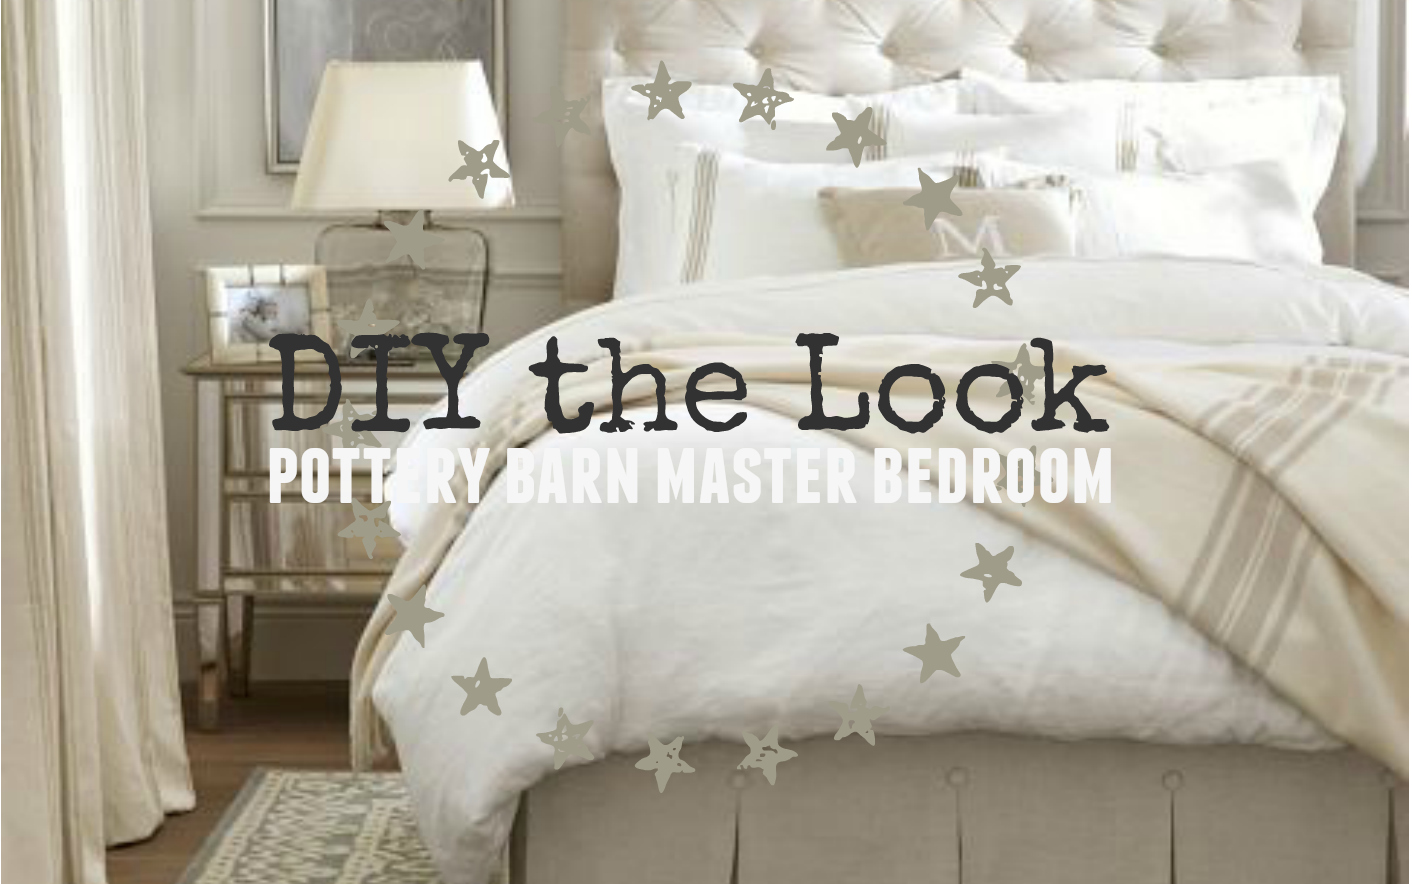 Pottery Barn Master Bedroom: DIY the Look - The Weathered Fox